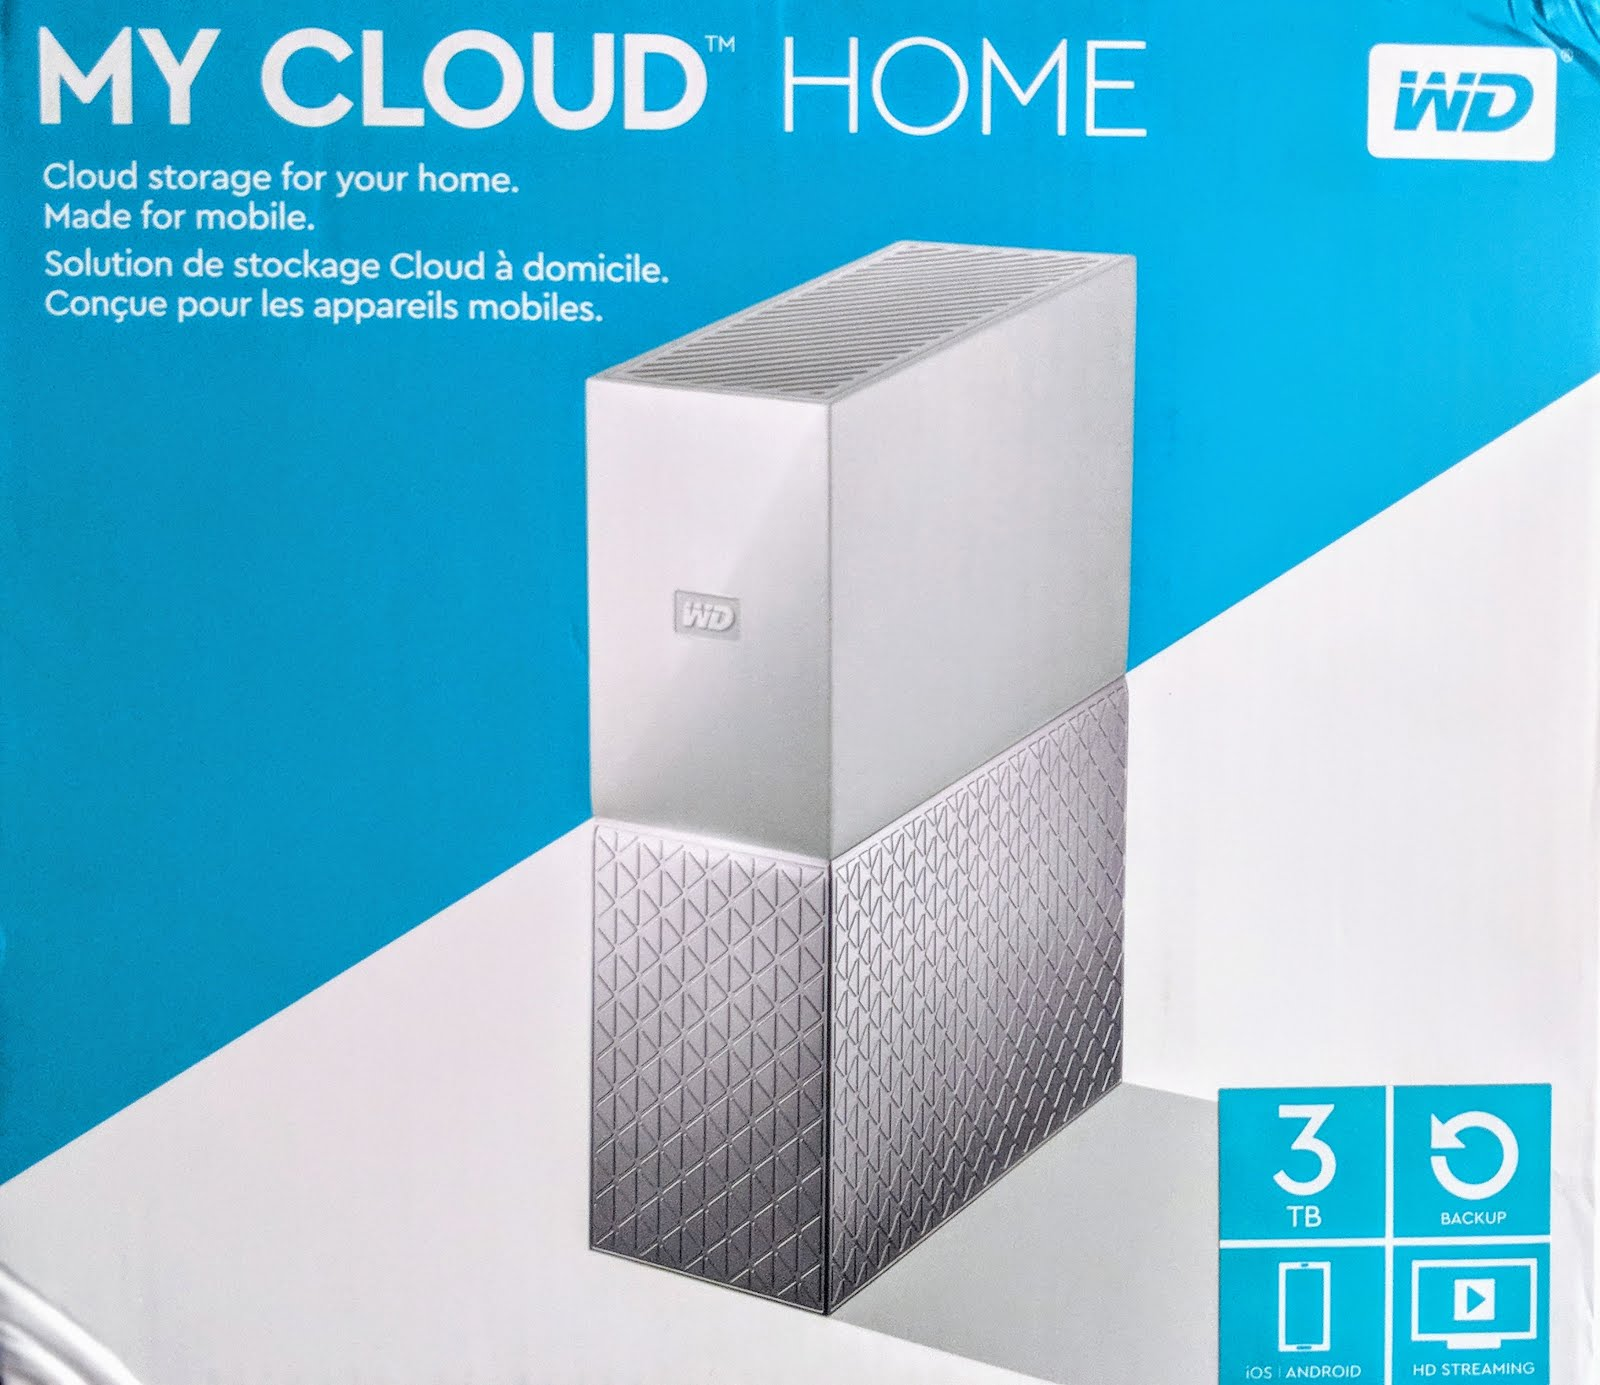 Unboxing the WD My CLoud Home Storage Device